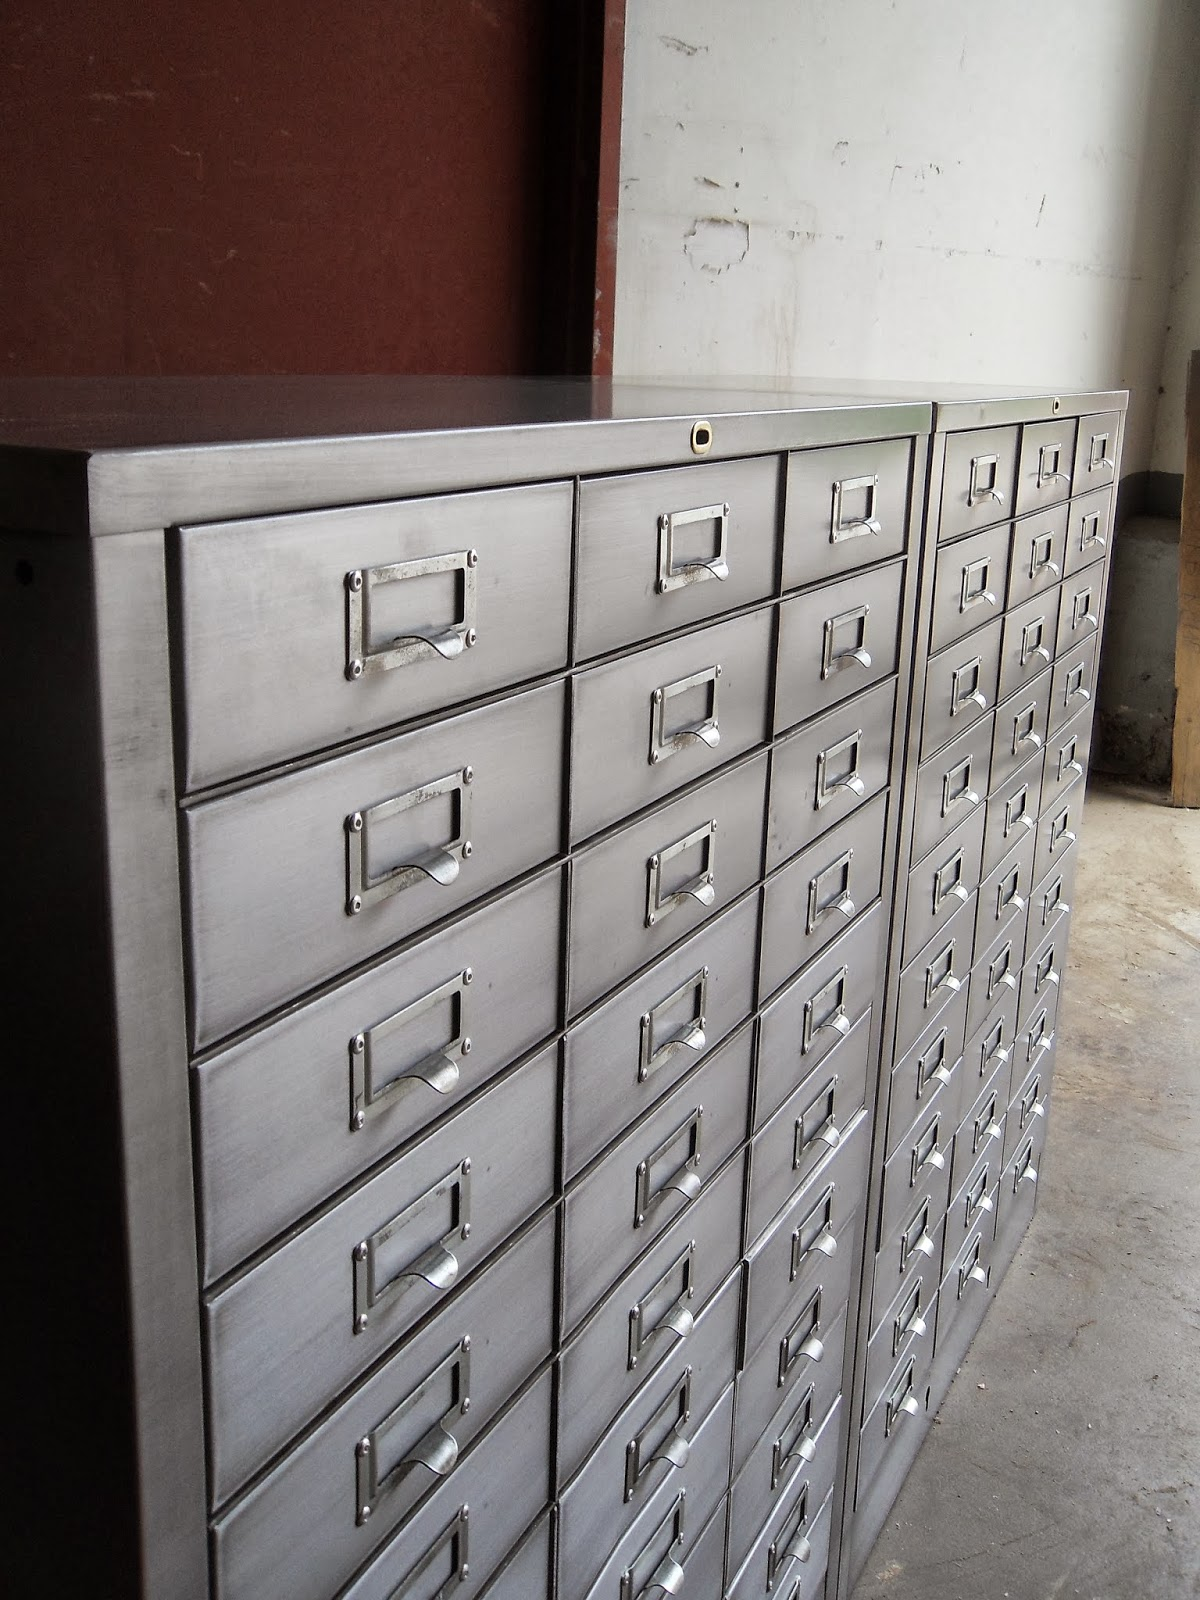 Pair Of 33 Drawer Form File Cabinets From Cole Steel. Stripped Steel Bodies  With A Satin Clear Coat. Jondcourt@gmail.com